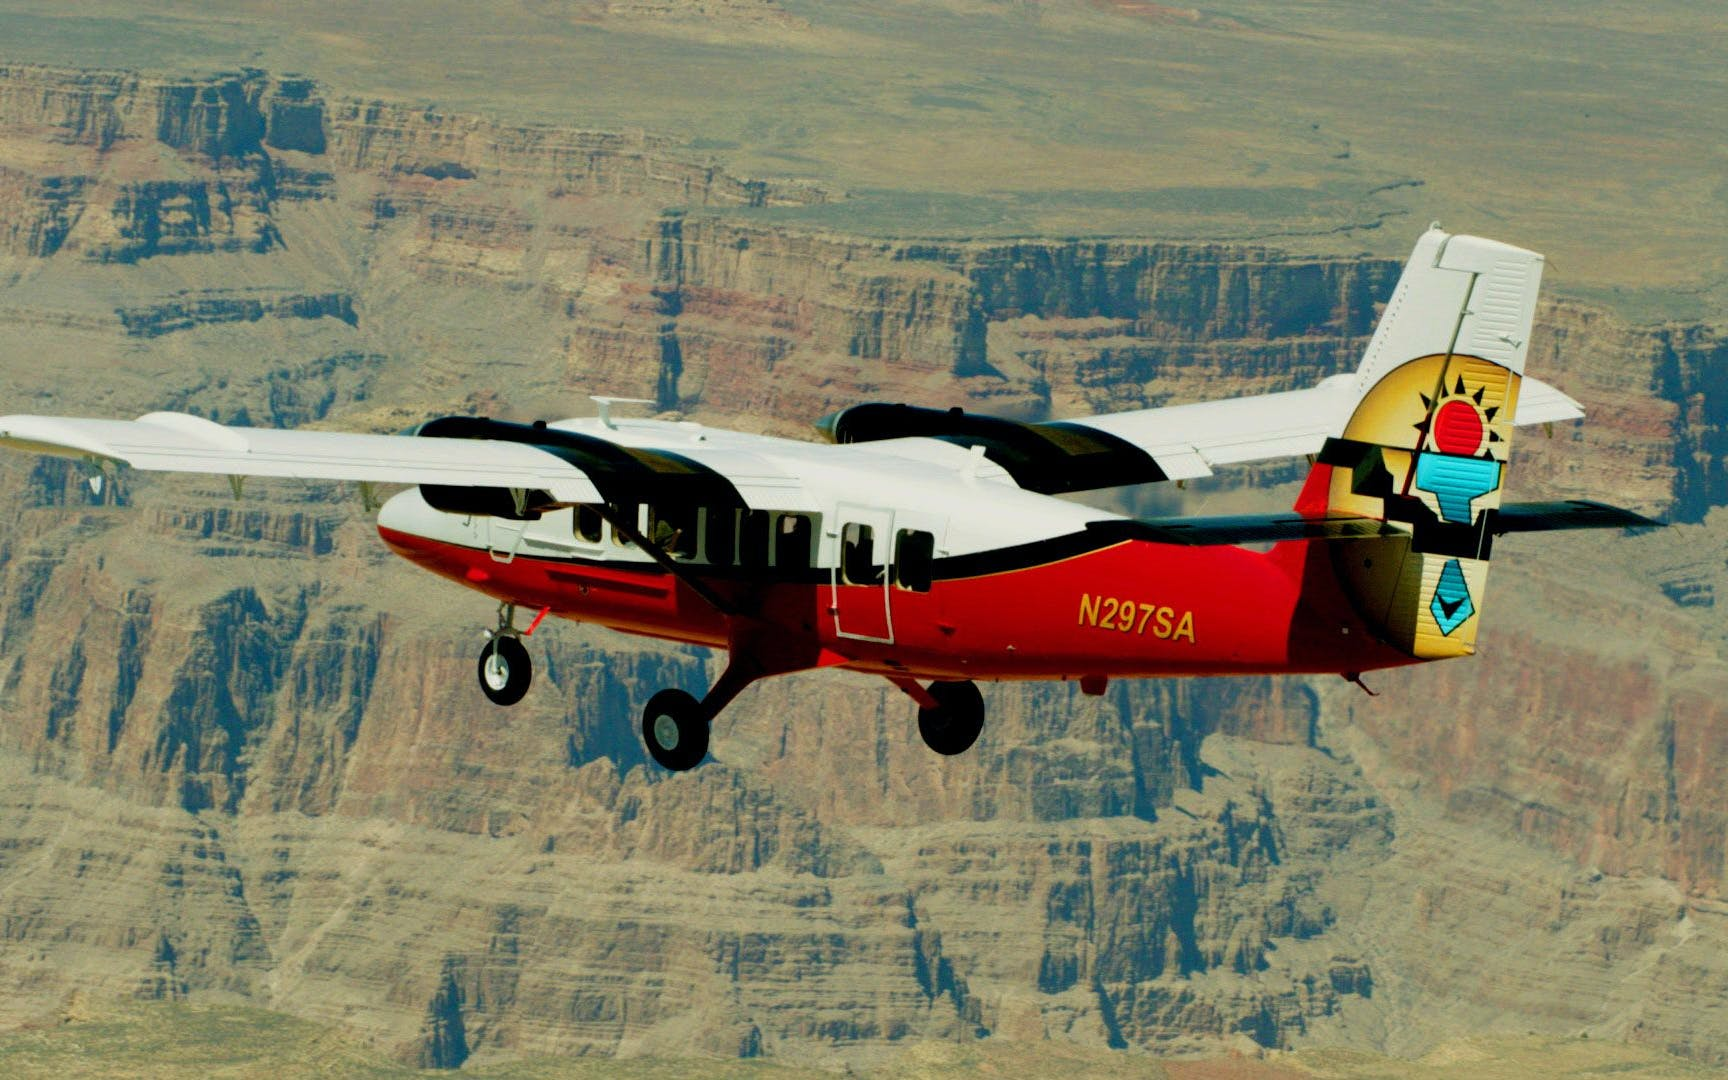 Grand Canyon West Rim Airplane Tour with Optional Legacy Pass (Self-Drive)